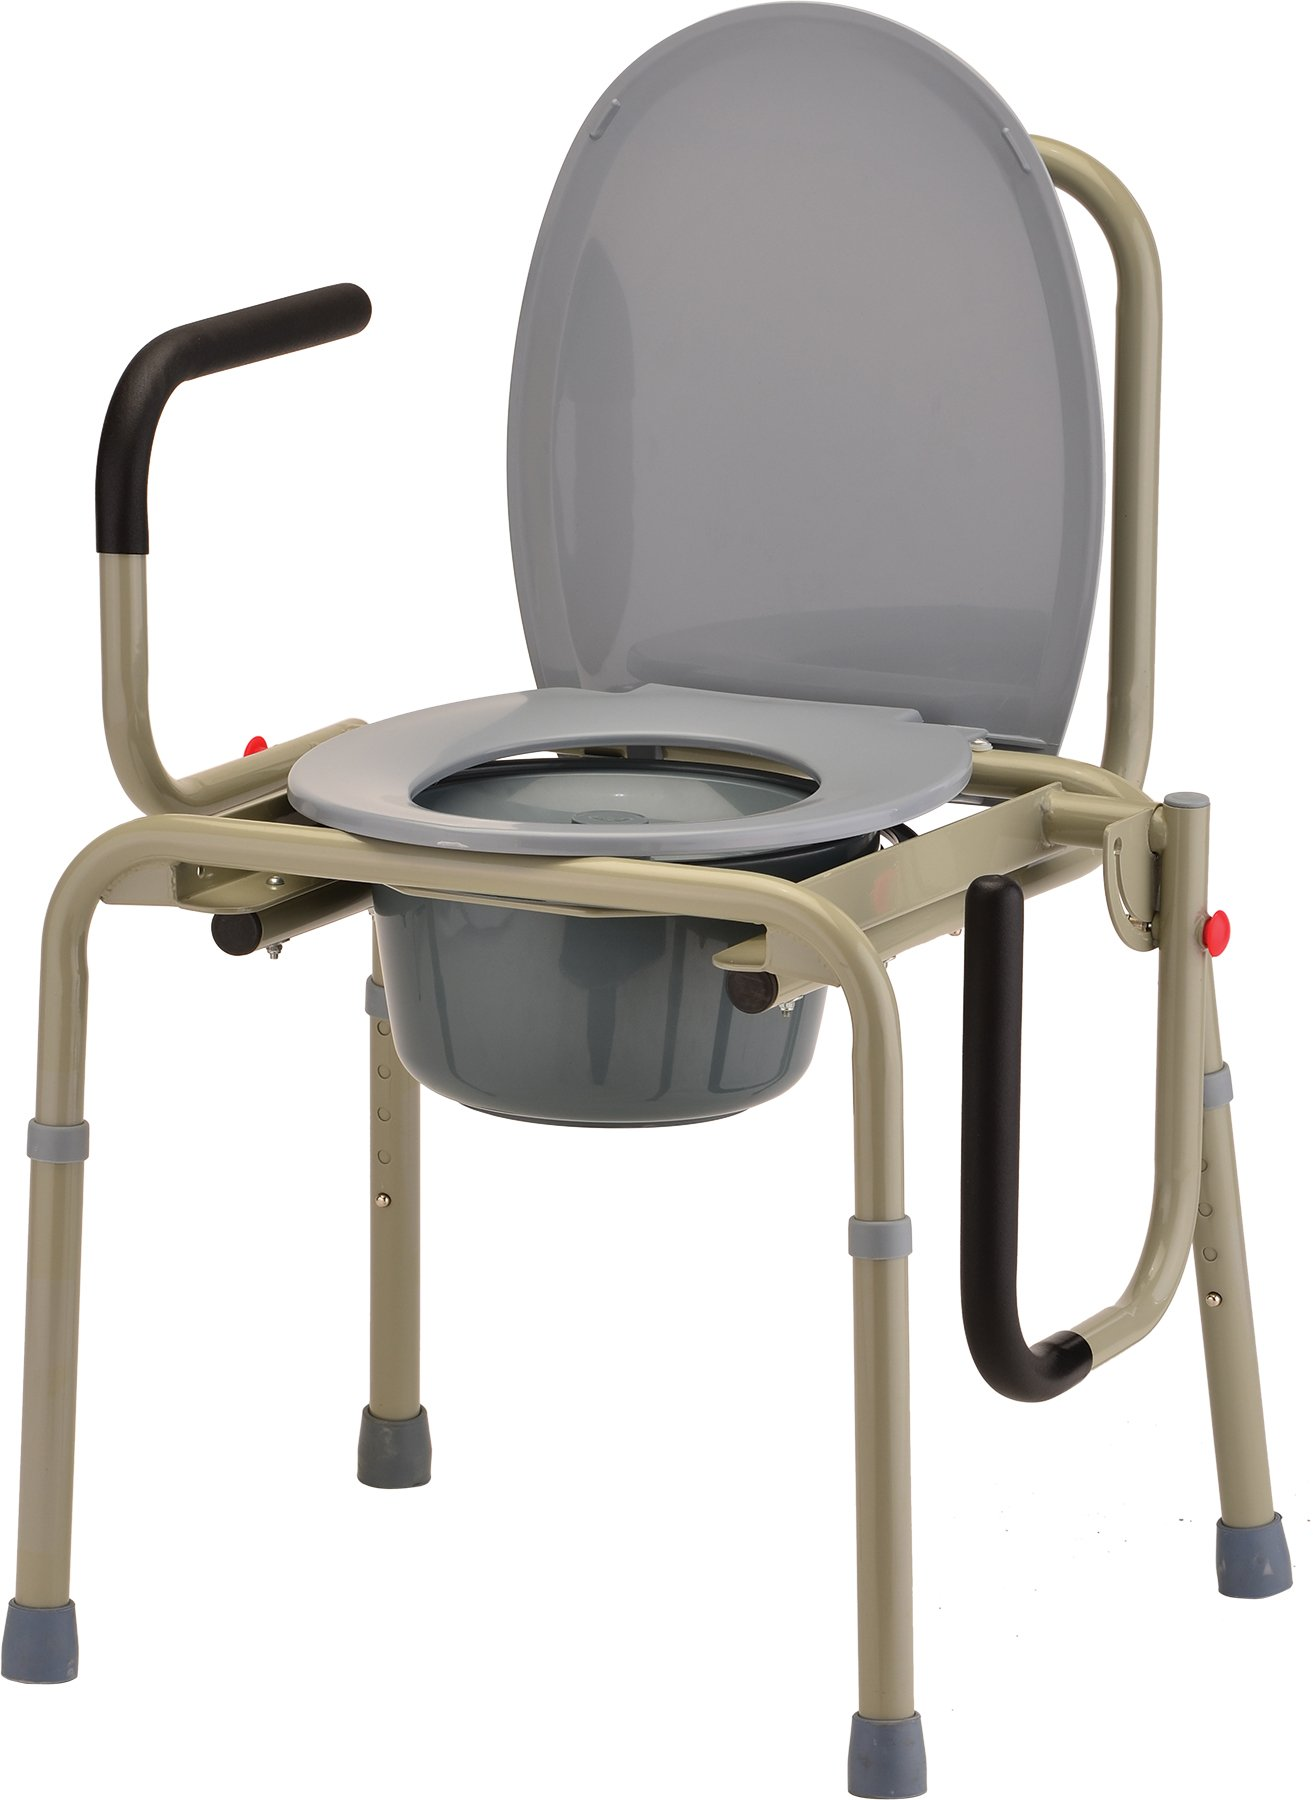 NOVA Medical Products Drop Arm Commode, Gray, 20.5 Pound